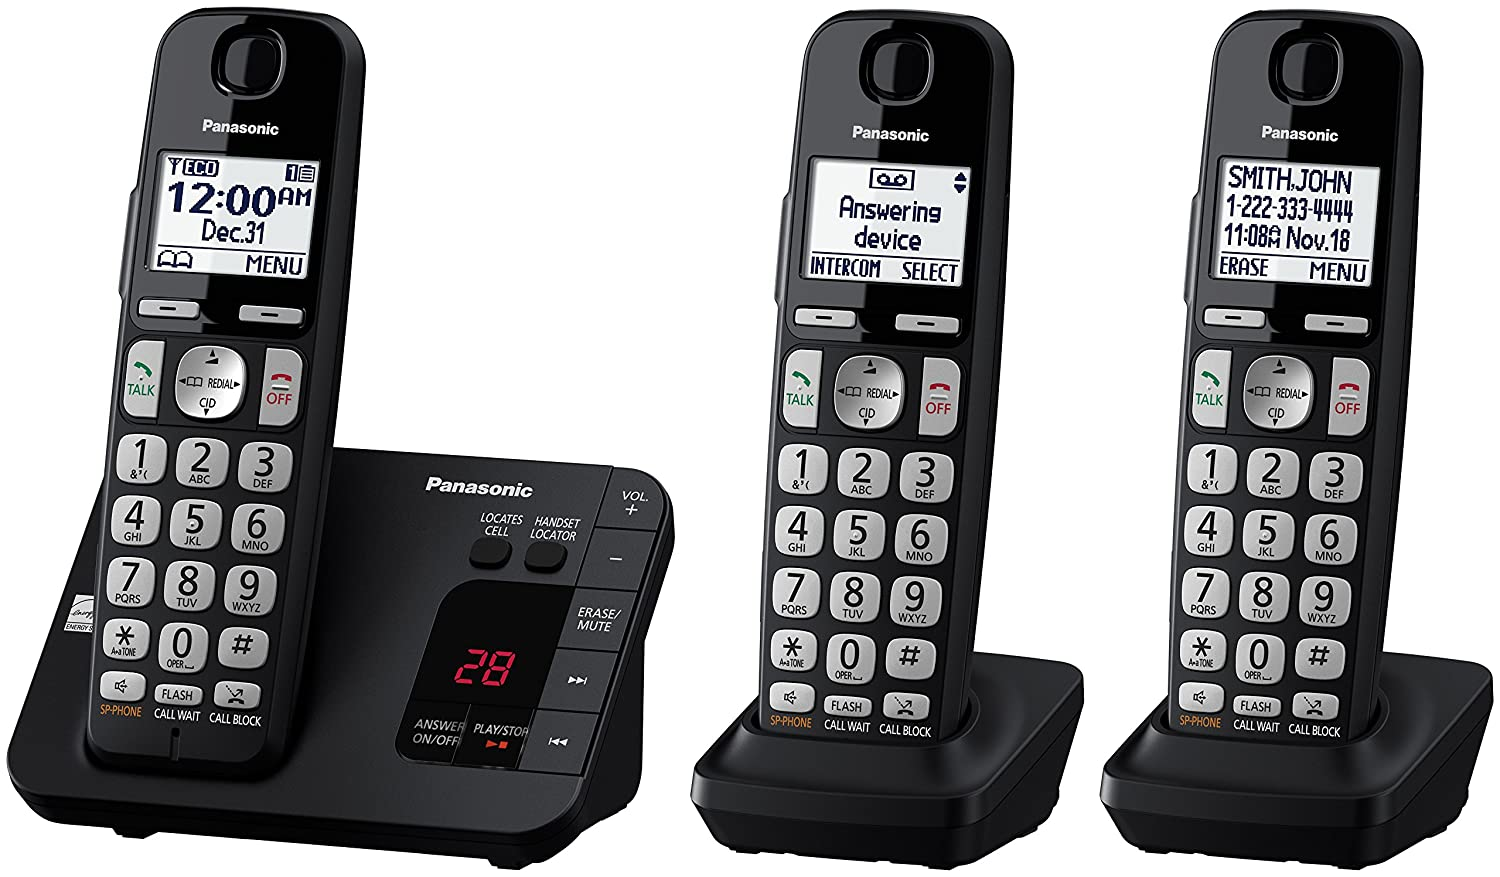 panasonic phone manual kx tgc223nz handsets panasonic new zealand rh tech highcouncil eu manual panasonic phone kx-tgf344 manual panasonic phone kx-tgf344